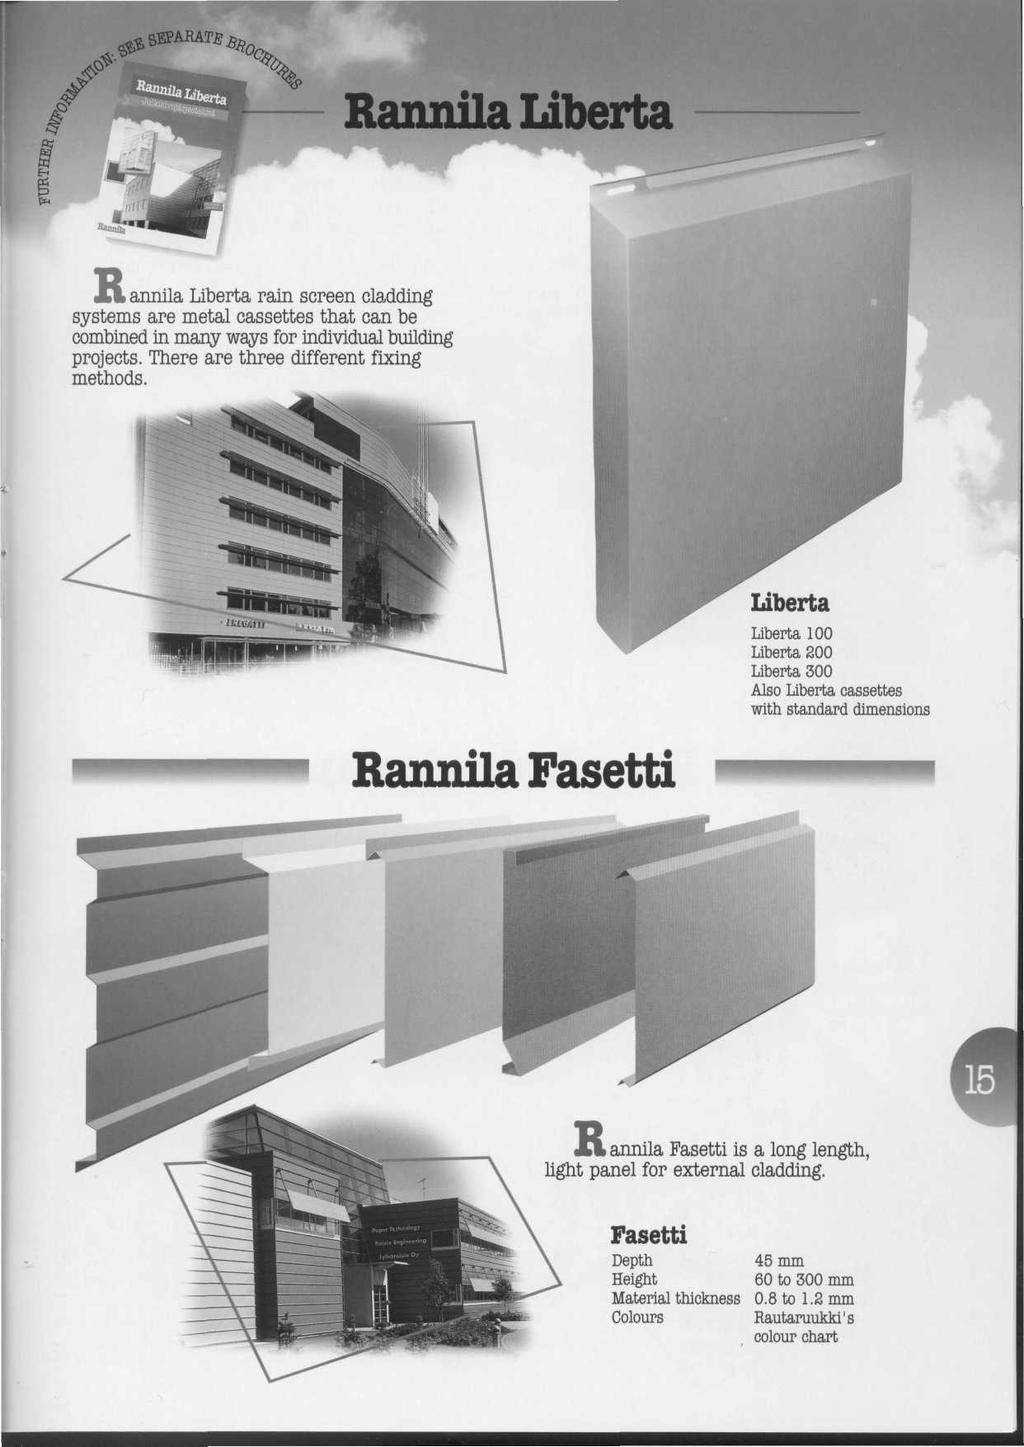 Rannila Liberta R. annila Liberta rain screen cladding systems are metal cassettes that can be combined in many ways for individual building projects. There are three different fixing methods.